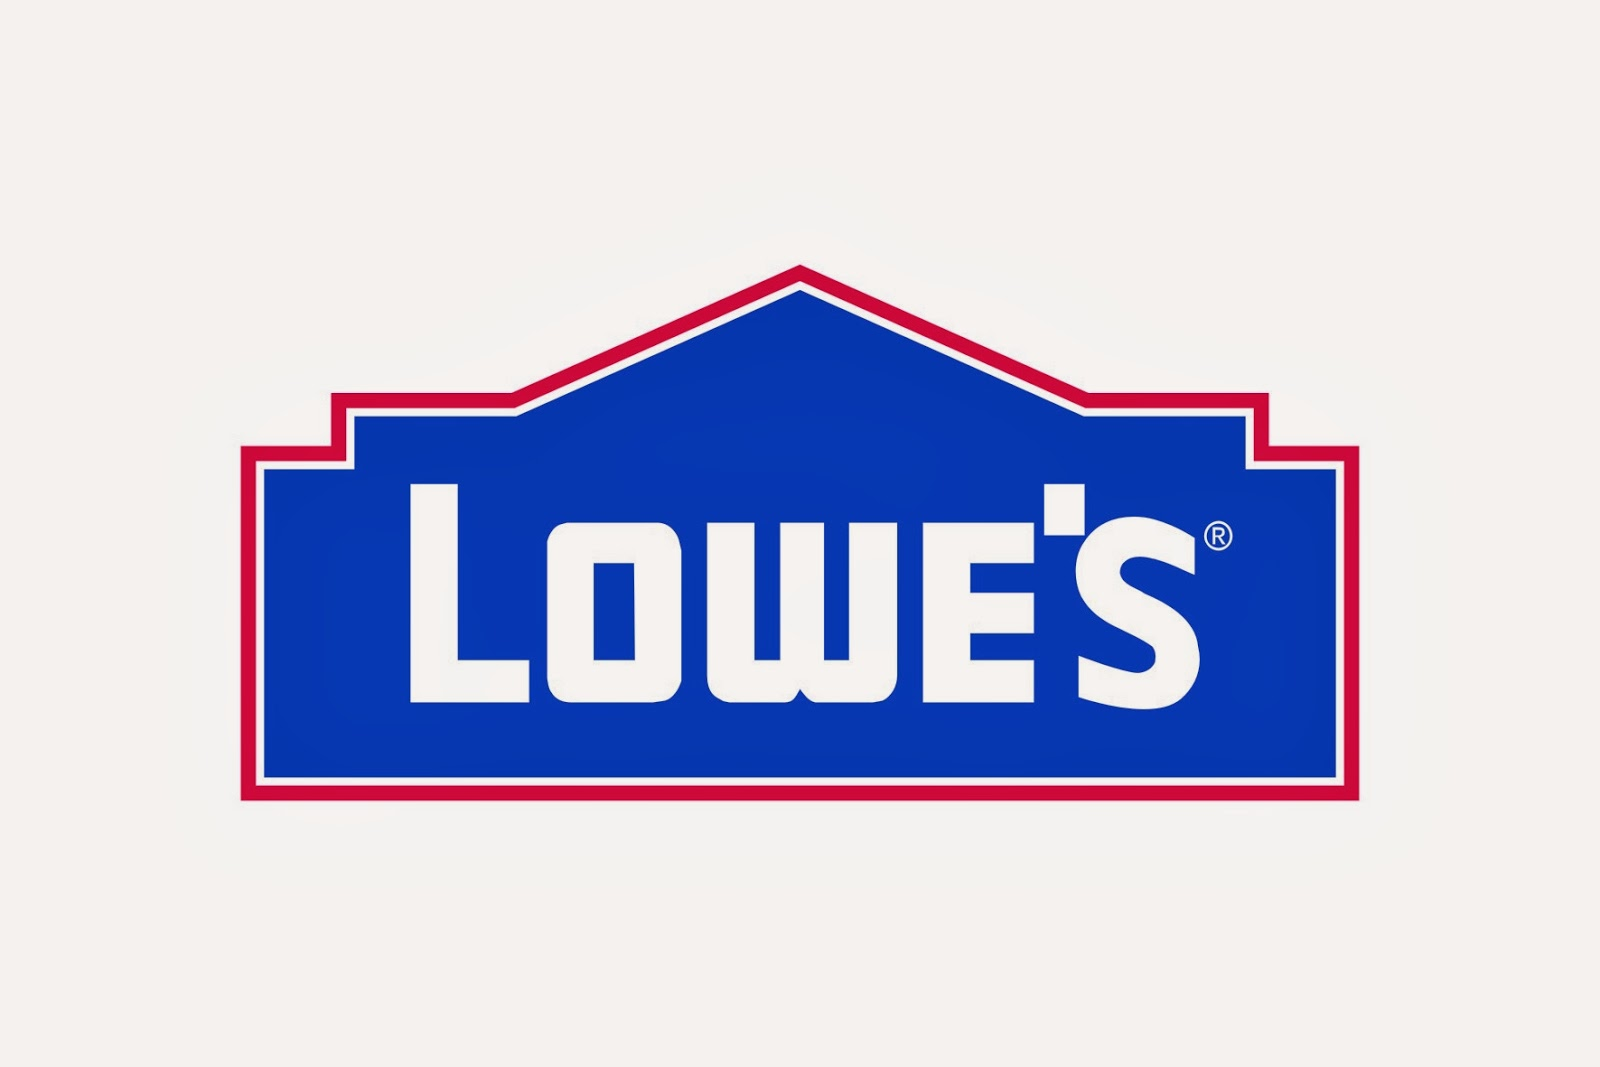 Lowes logo clipart picture freeuse library Lowes Logos picture freeuse library